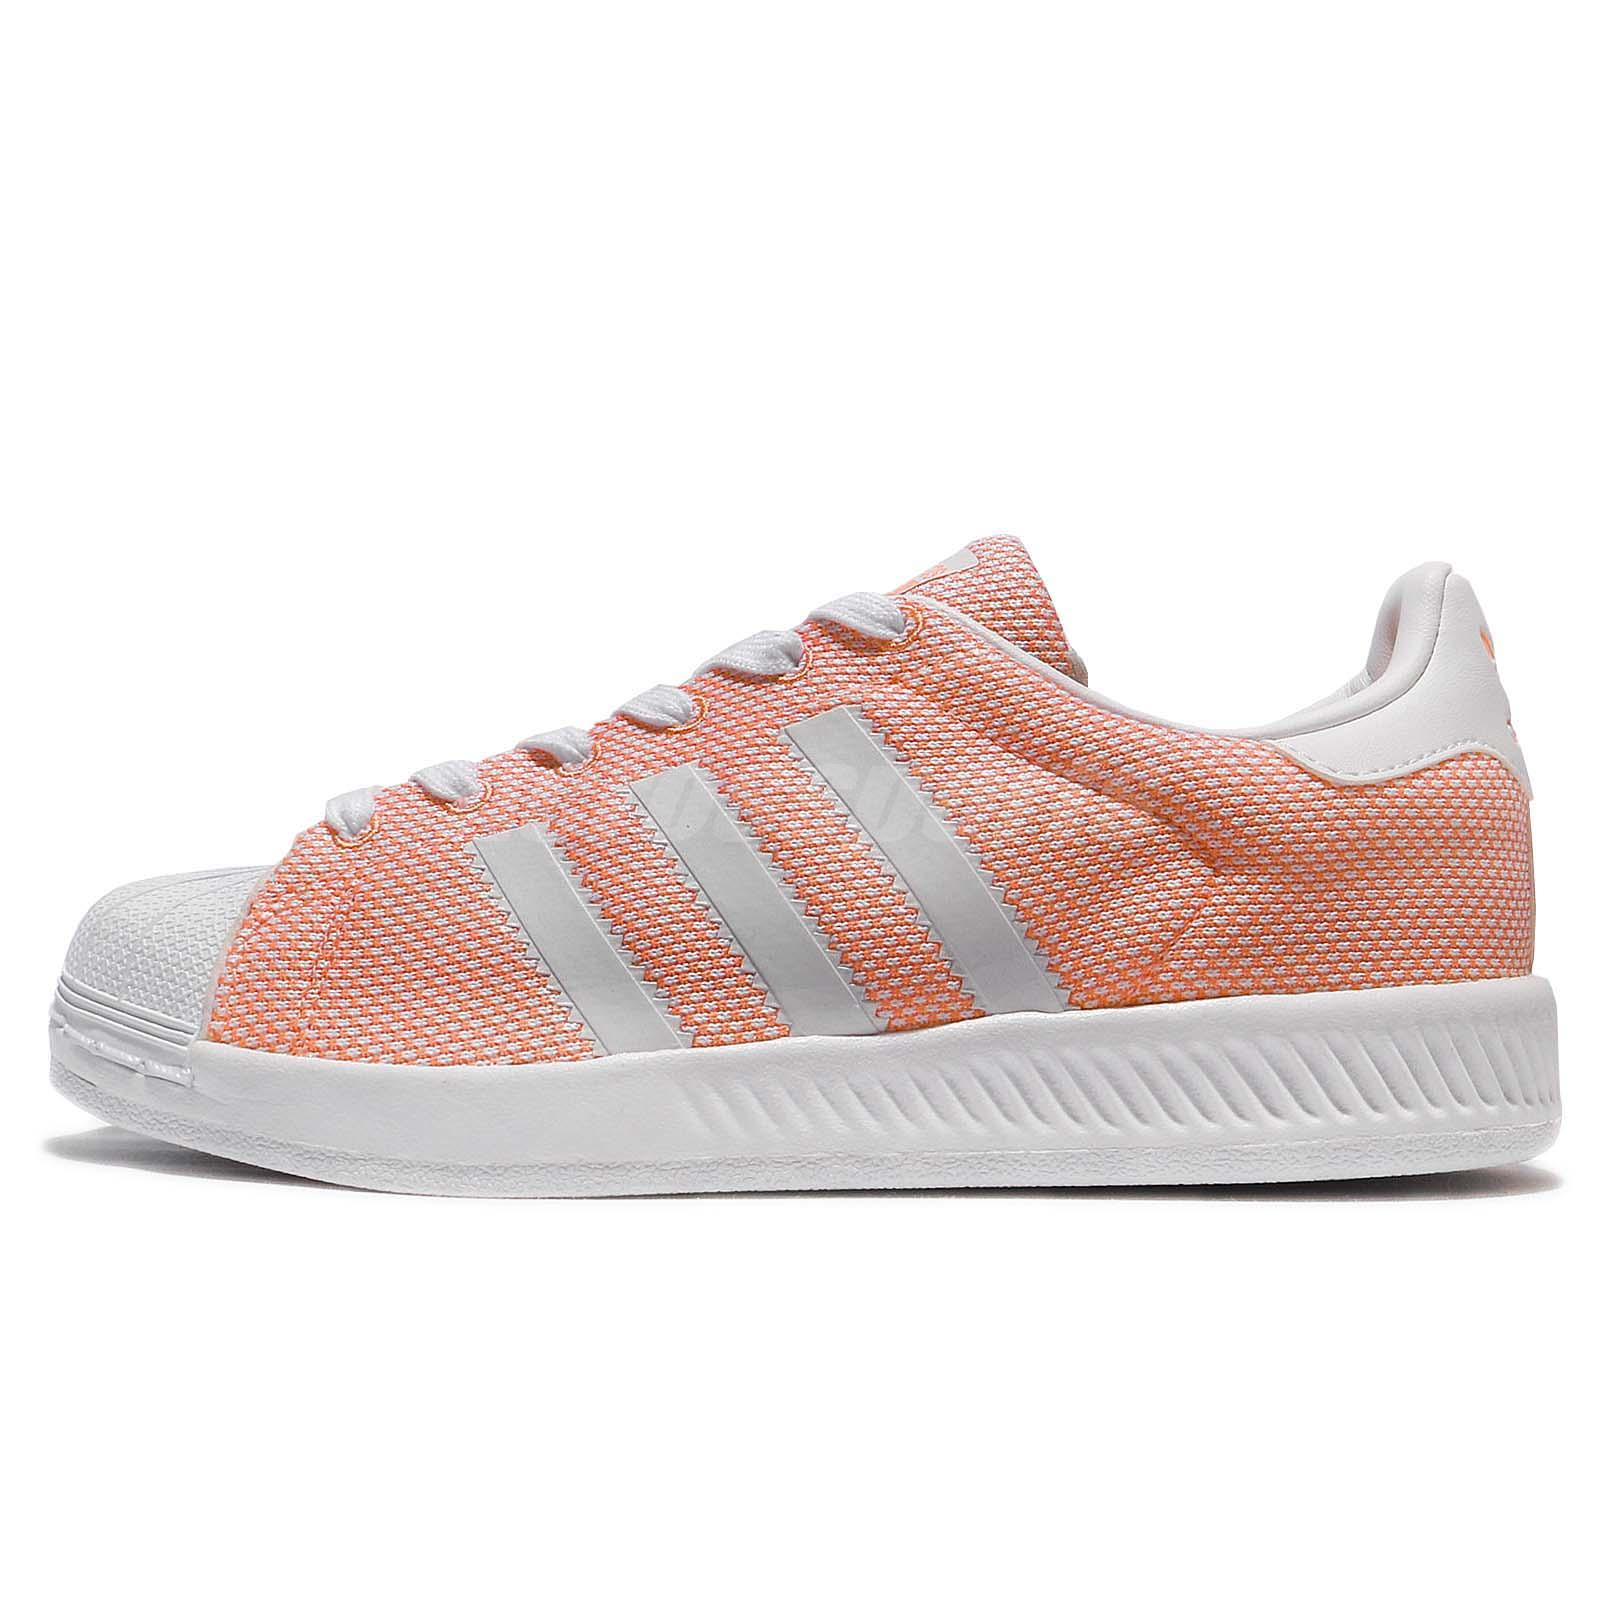 adidas Originals Superstar Bounce W Flash Orange White Women Shoe Sneaker  BZ0635